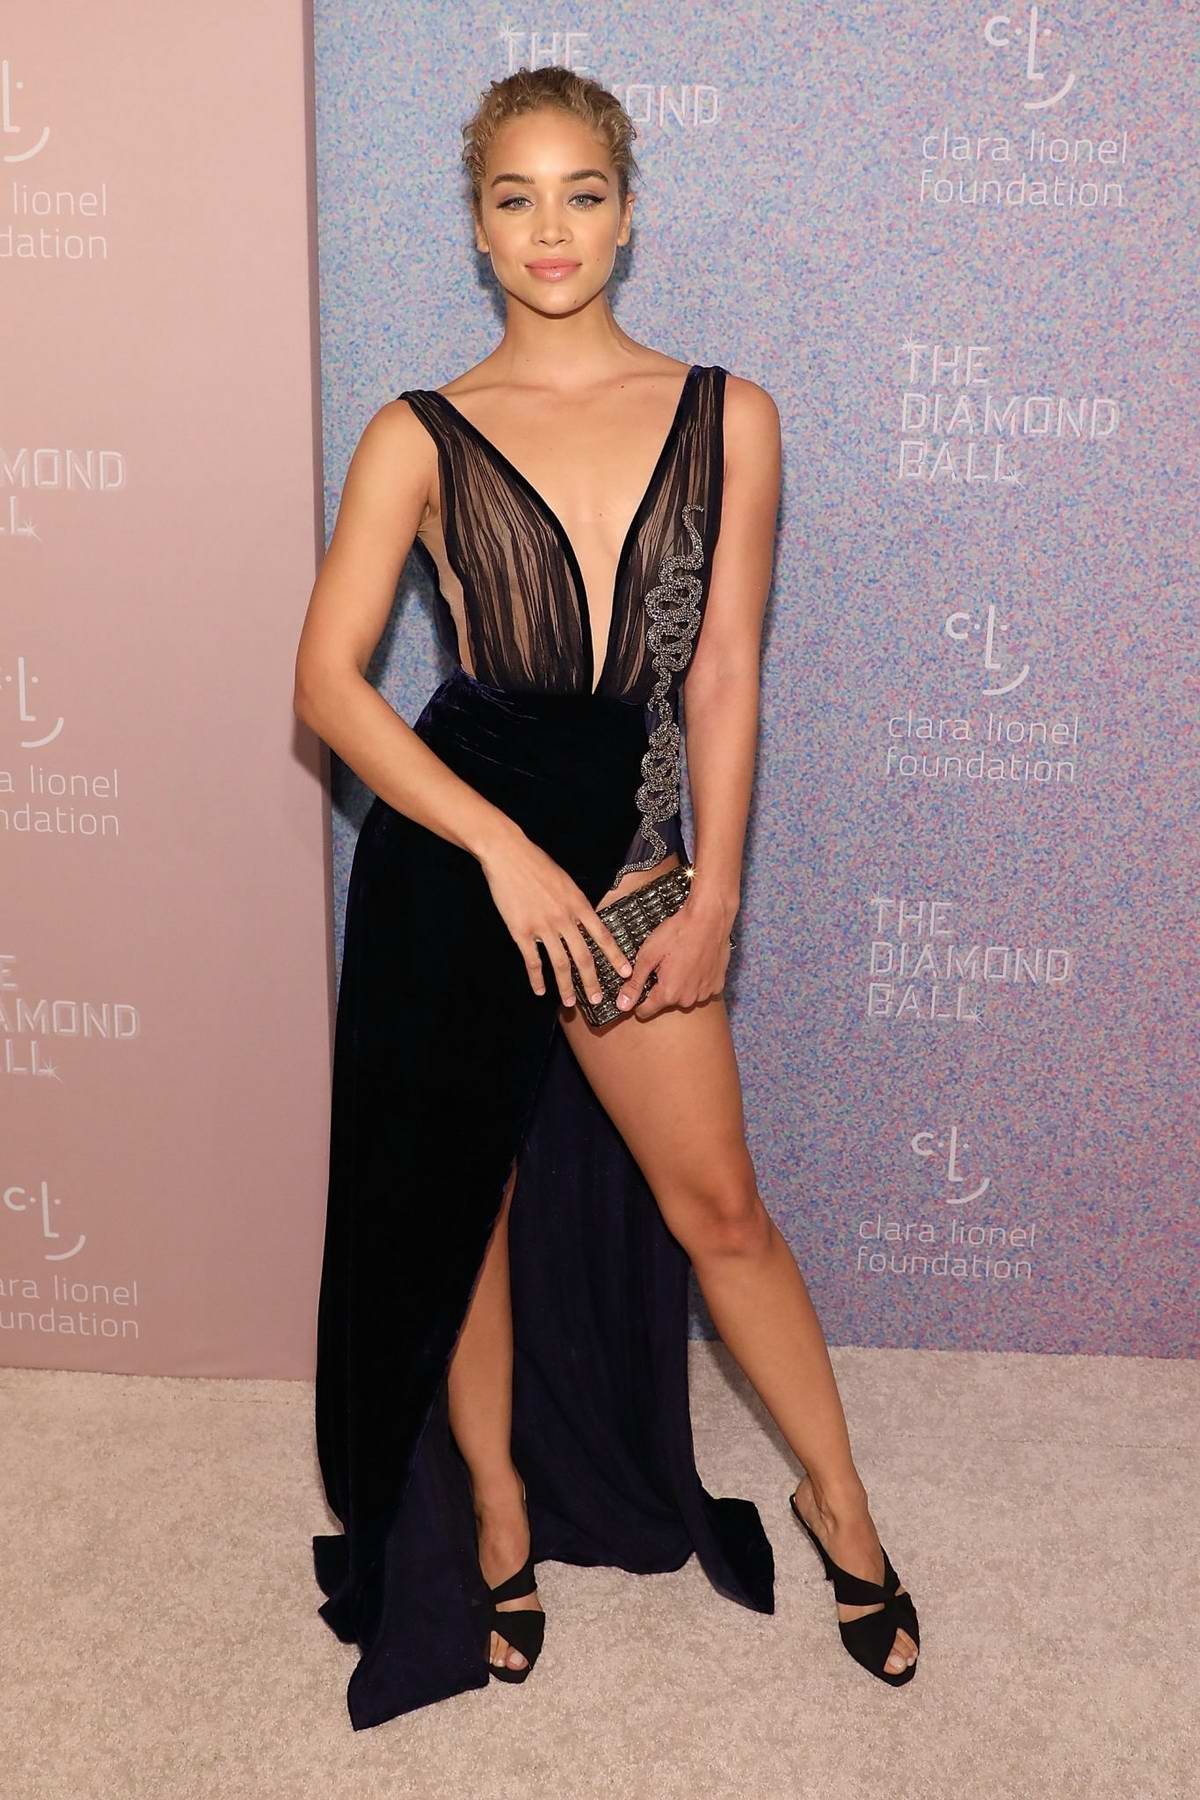 Jasmine Sanders attends 4th Annual Clara Lionel Foundation Diamond Ball in New York City